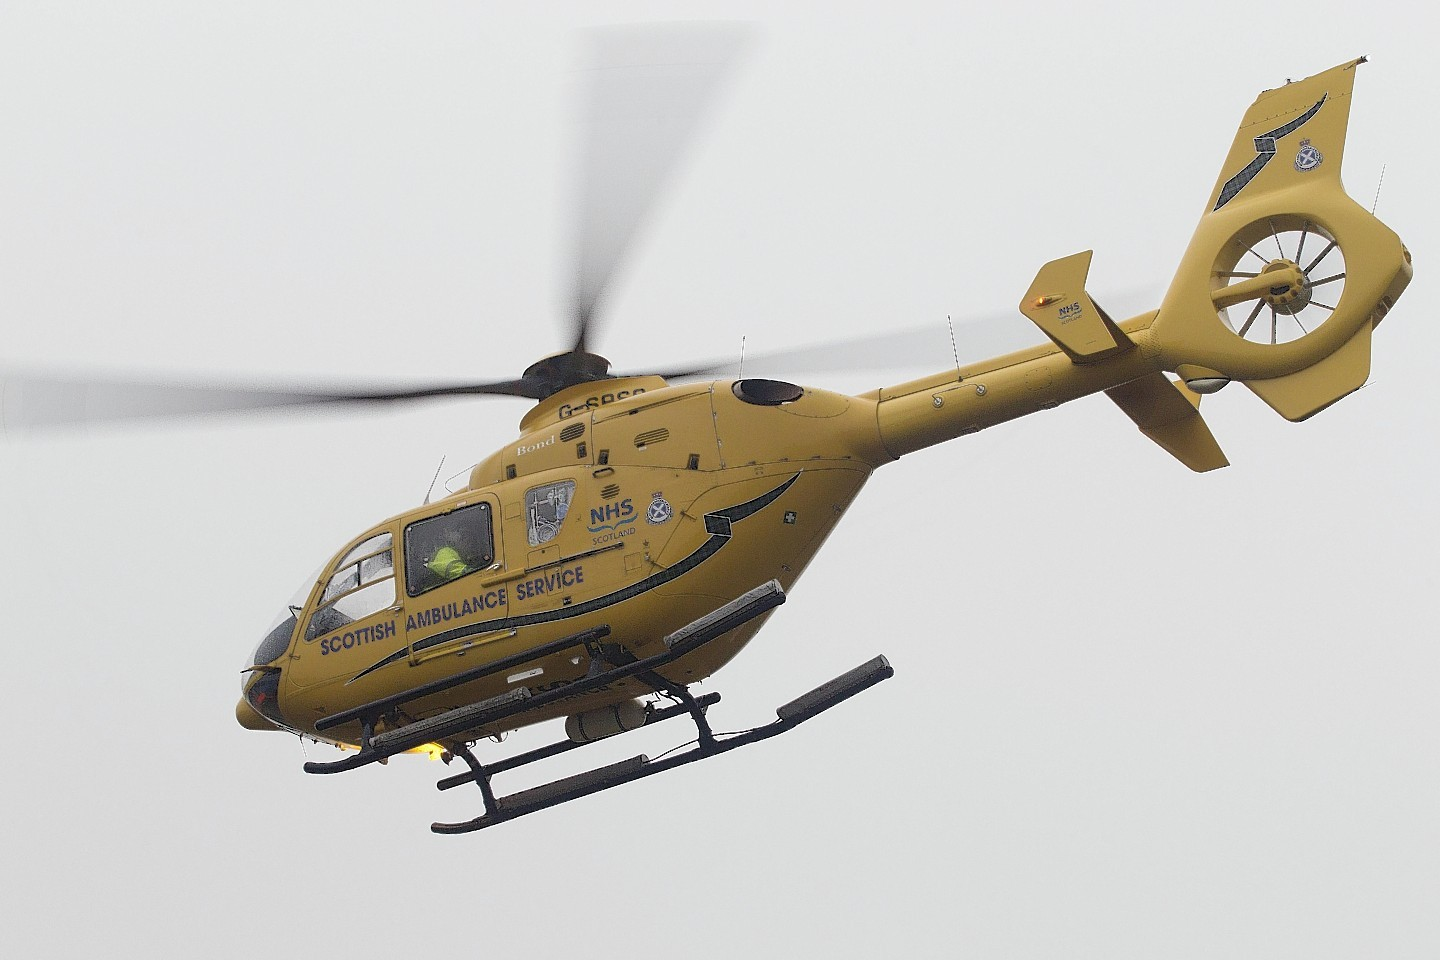 Two people have been airlifted after a plane crash in Argyll